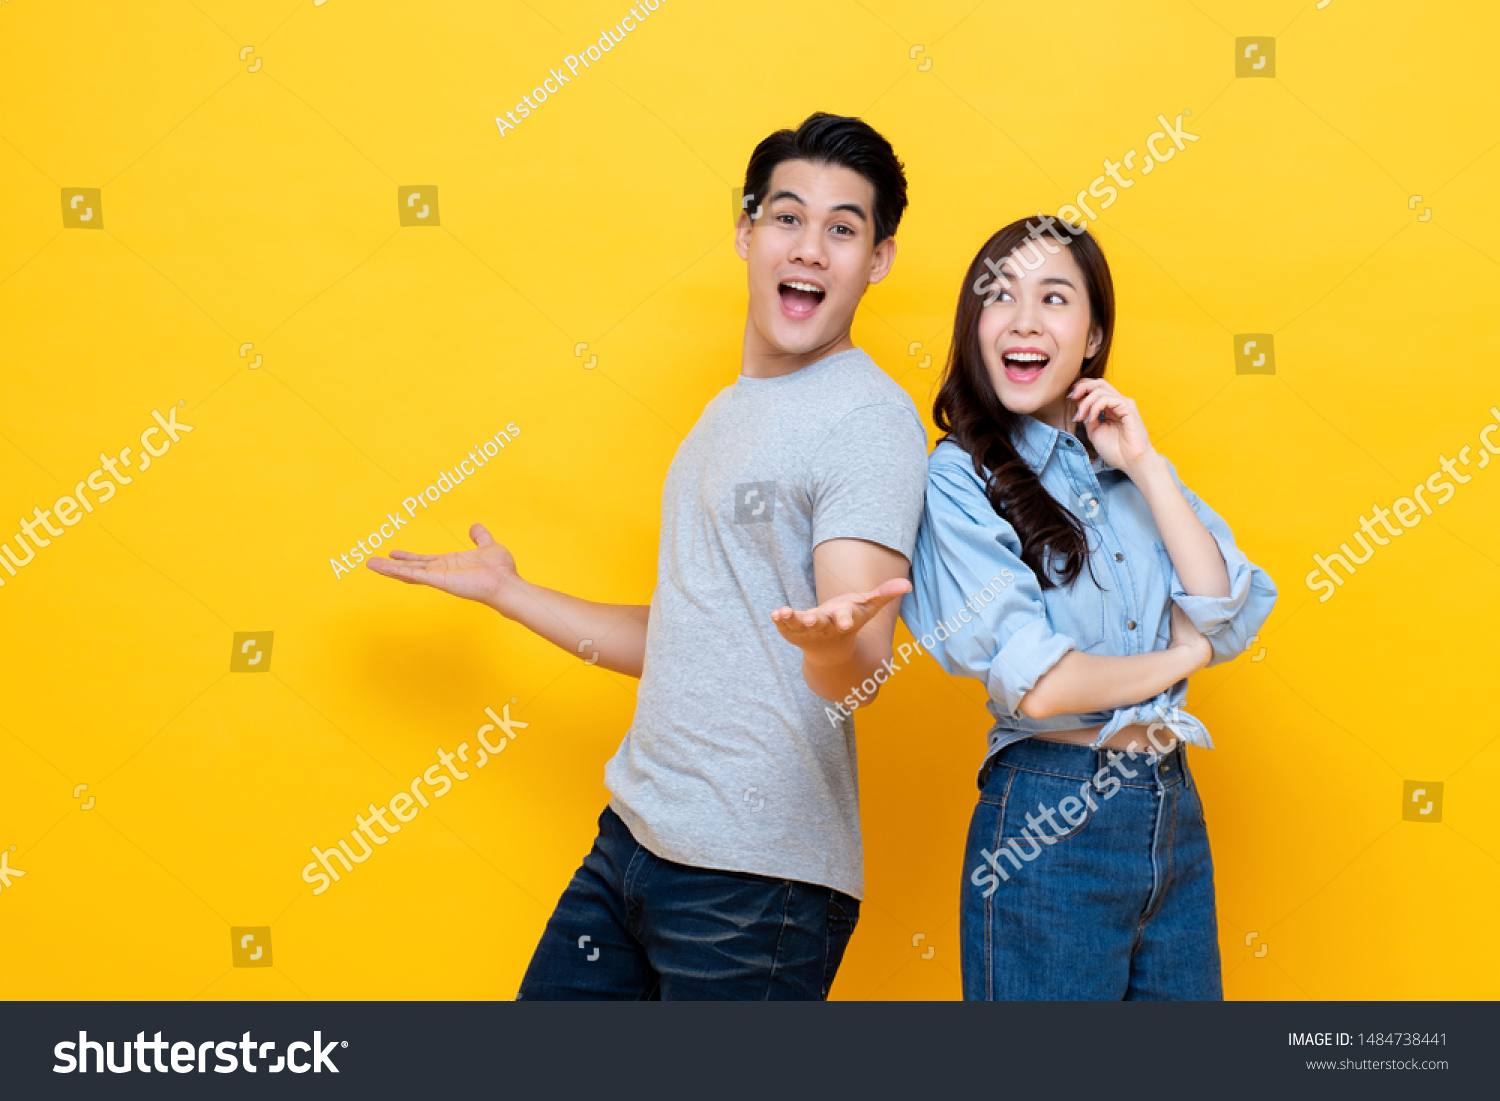 Attractive smiling young Asian couple being happy and amazed isolated on yellow studio background #1484738441